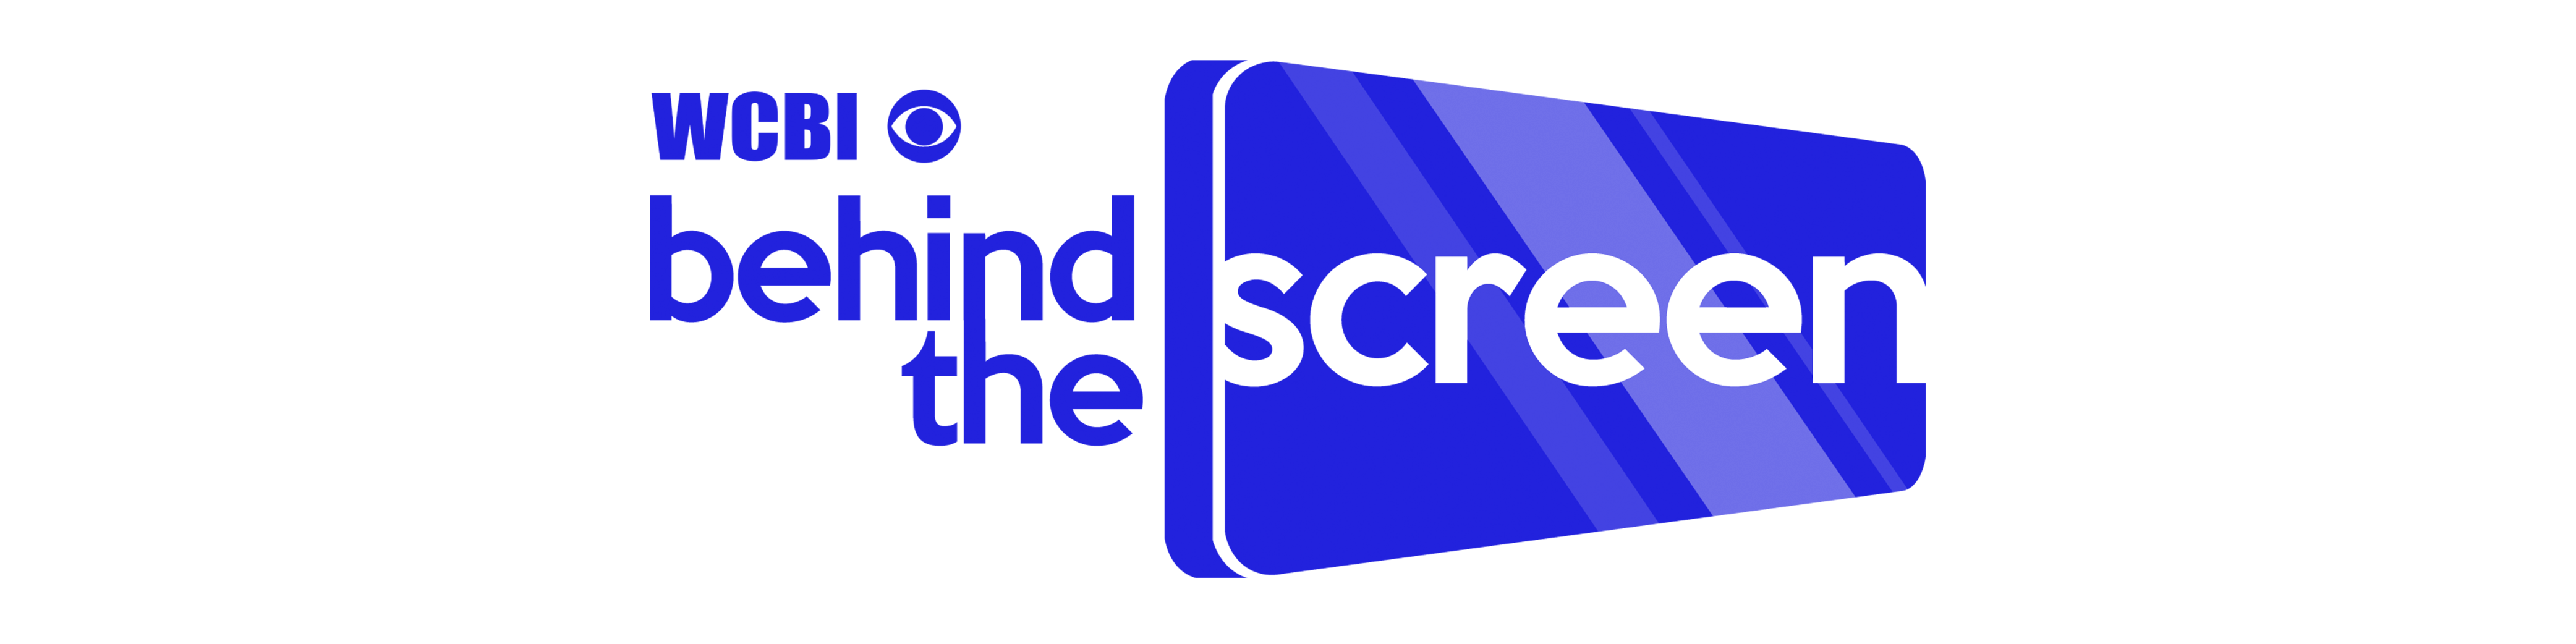 Behind The Screen Web Image